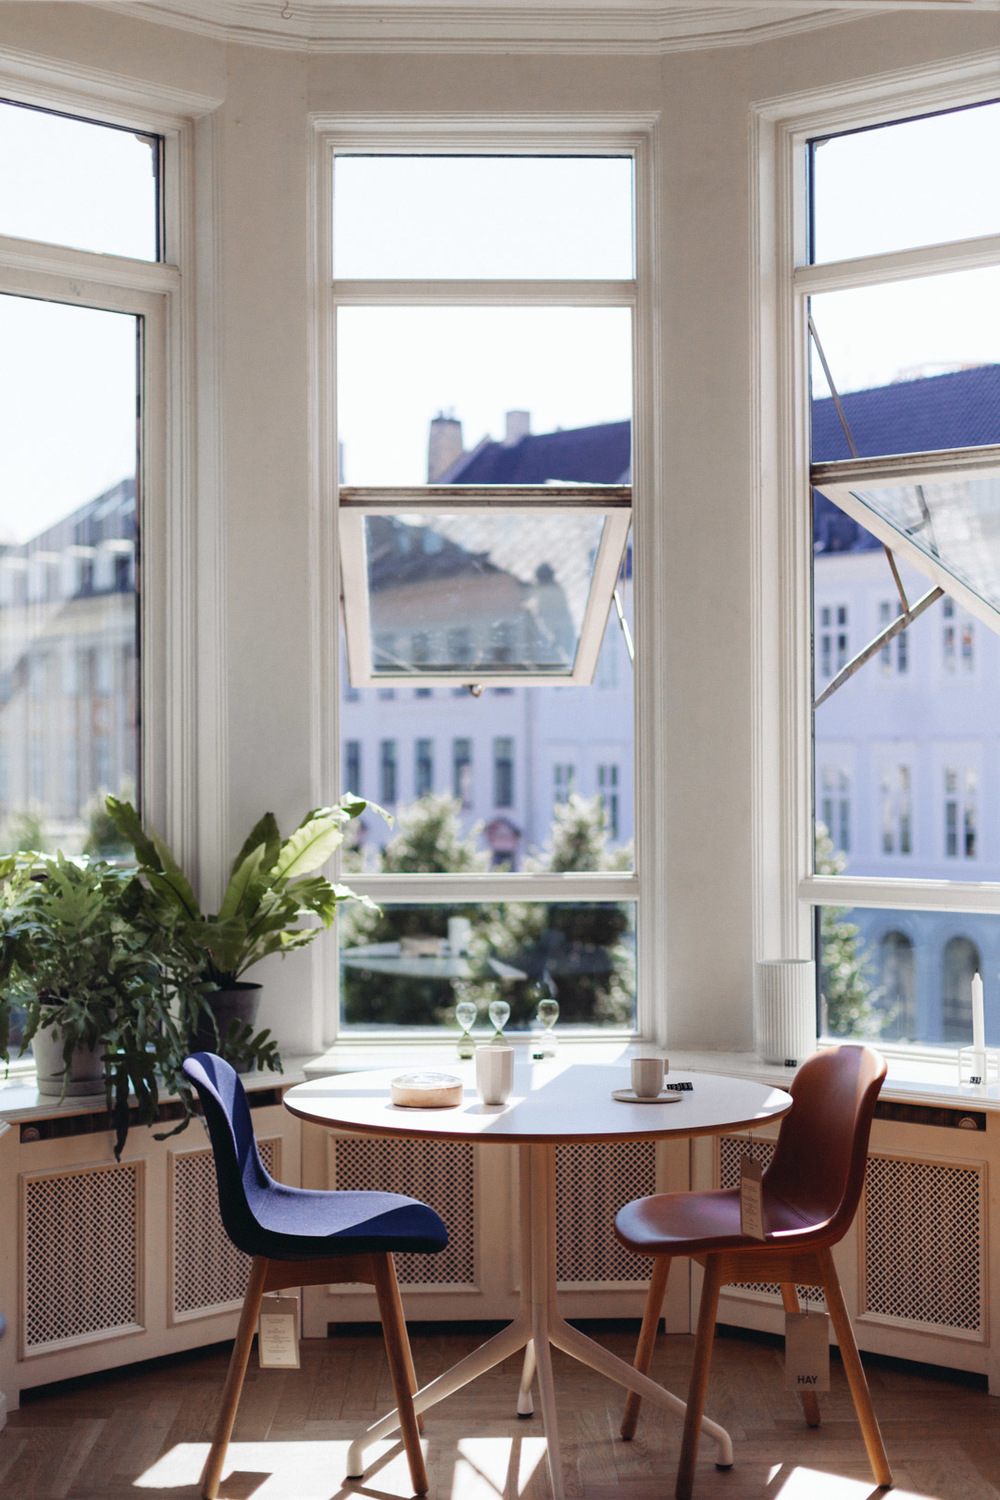 Le-Sycomore_Travel_Copenhagen_Design_Hay